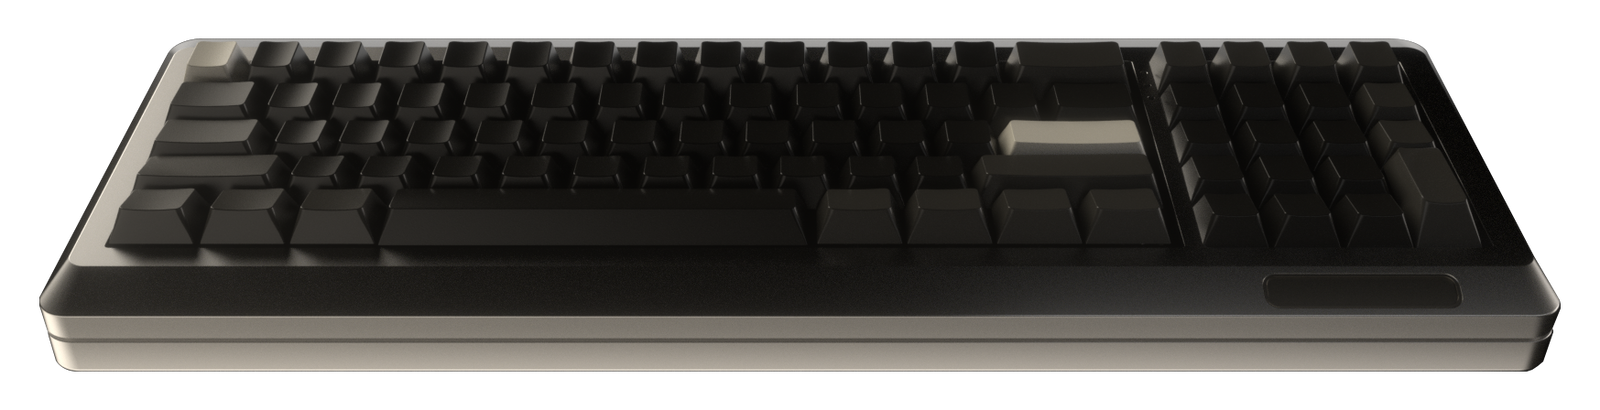 M0lly keyboard front view